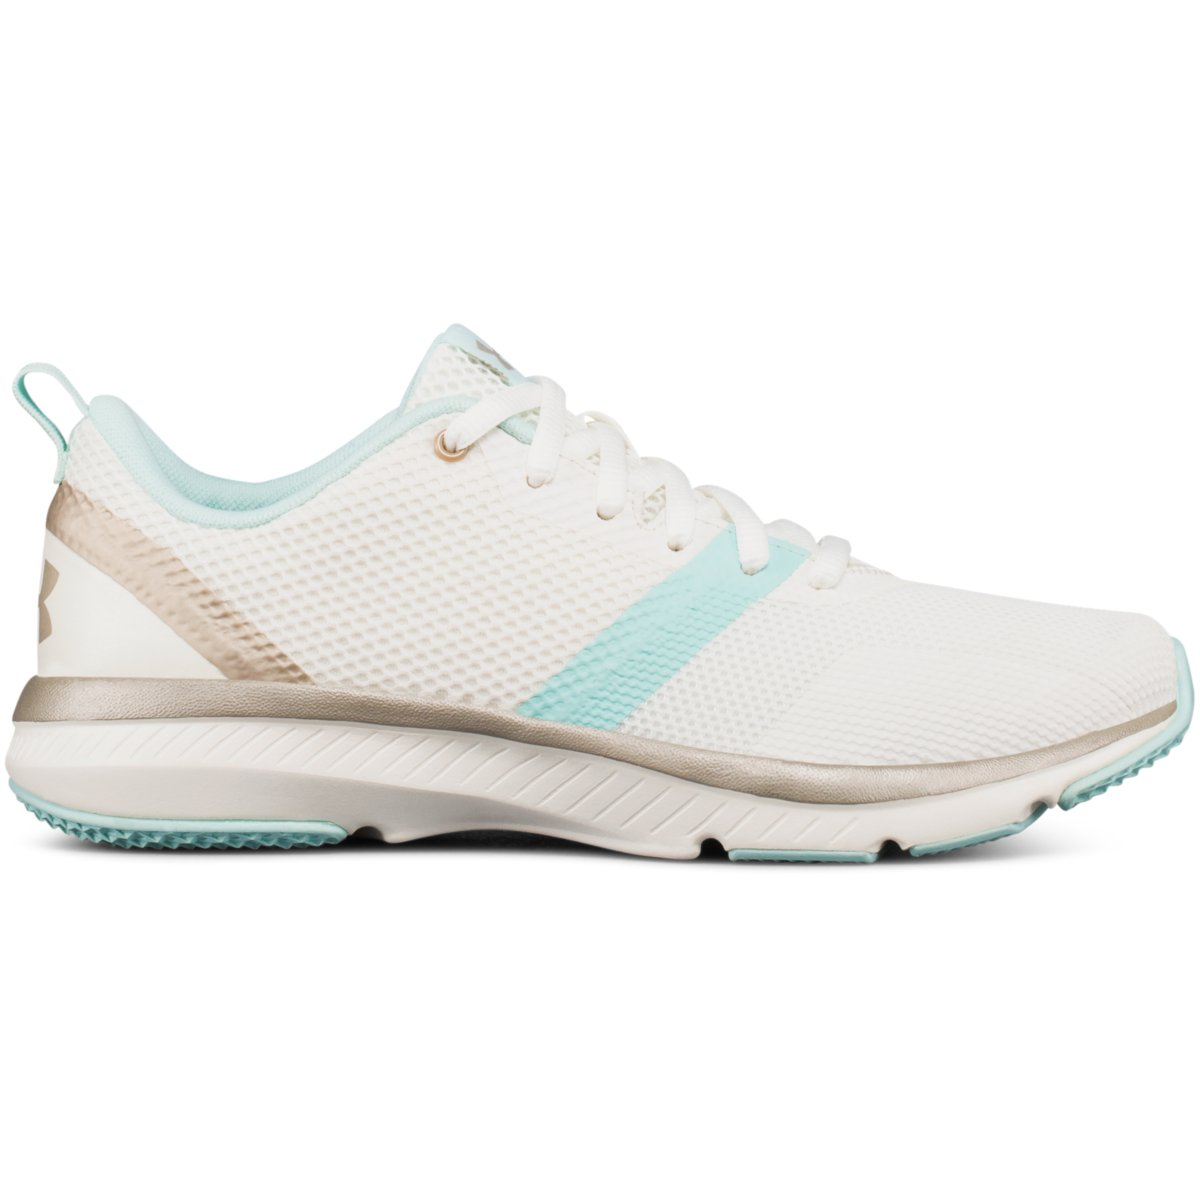 price reduced factory authentic price reduced wiggle.com | Under Armour Women's Press 2 Training Shoe | Running ...